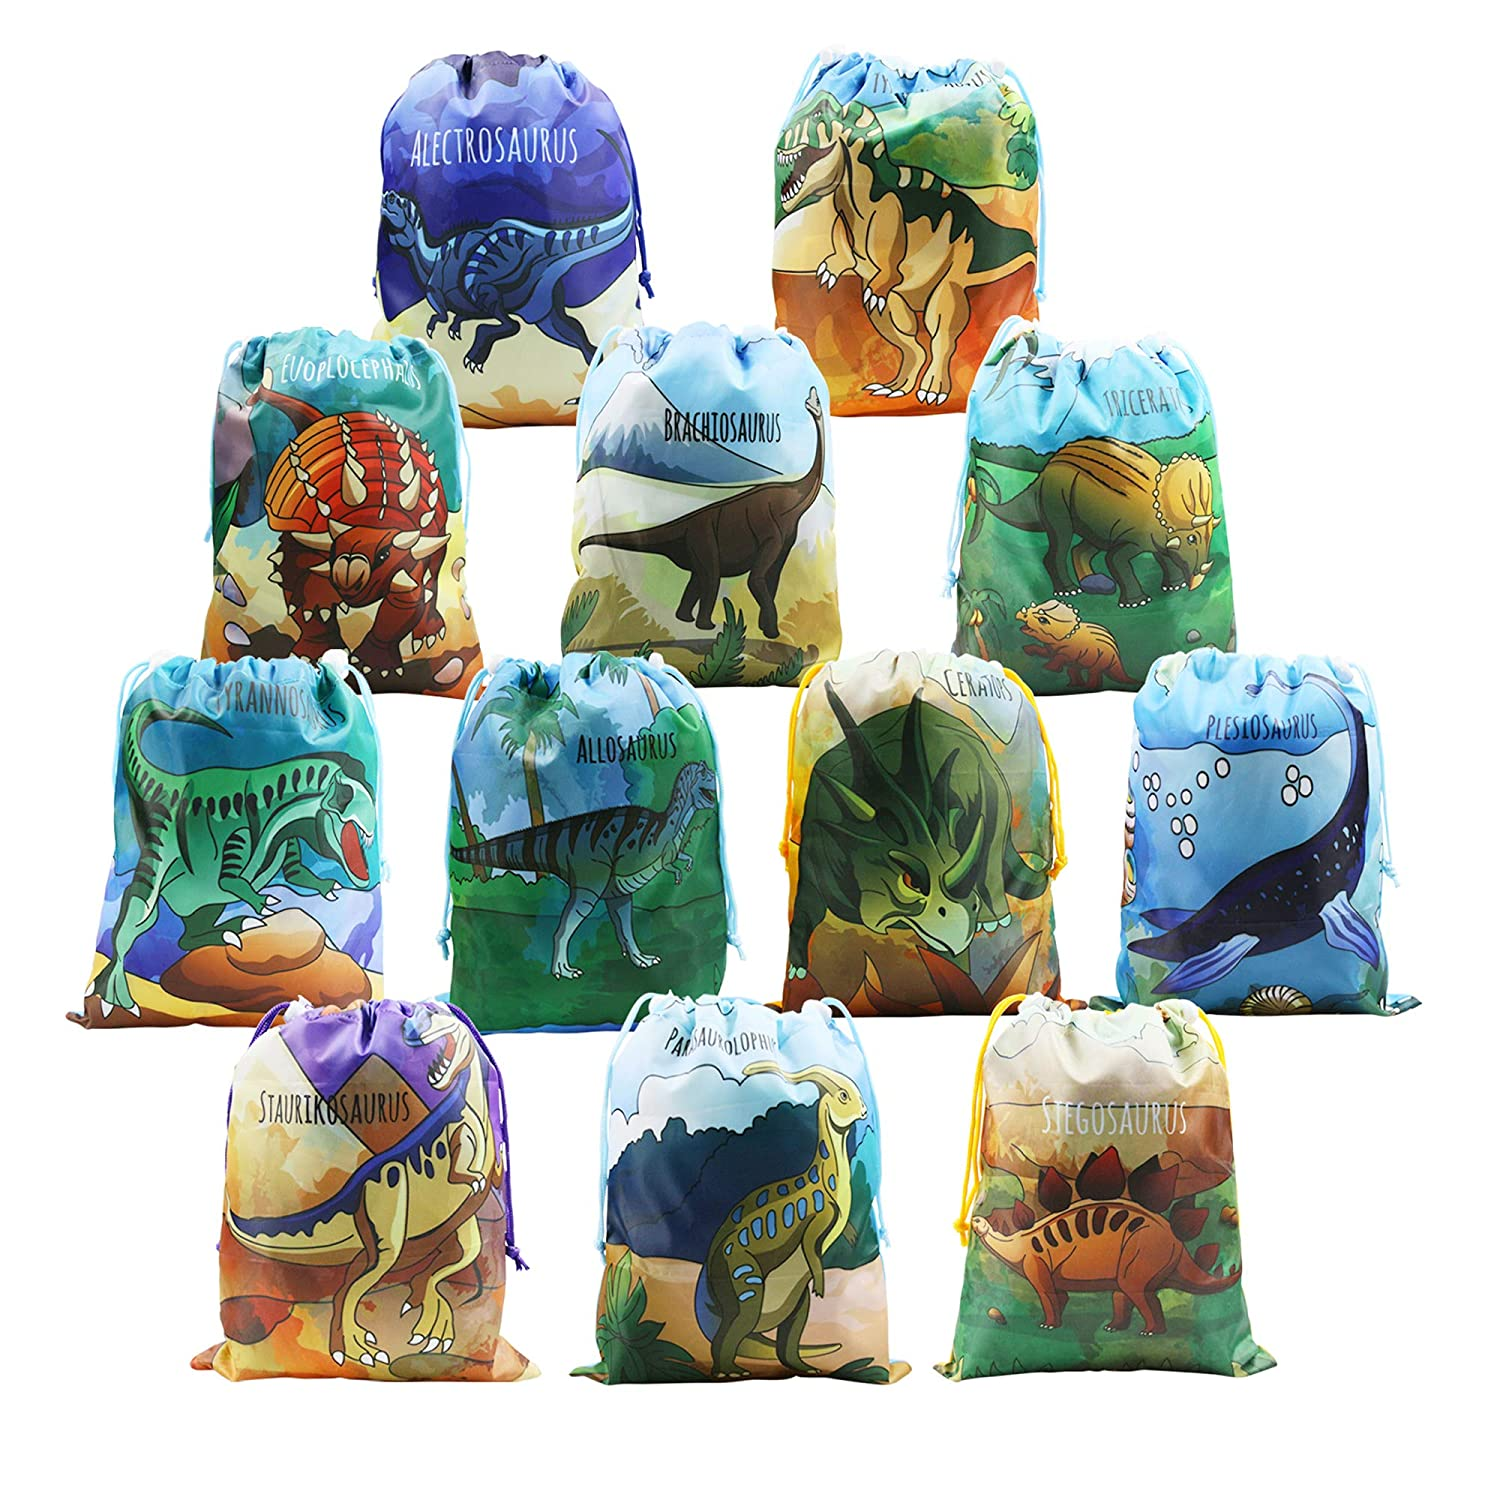 Party Bags Dinosaur Supplies Kids Ideas Gift 12 Pack Birthday Dino Drawstring Goodie In Bulk For Boys Girls Children Amazoncouk